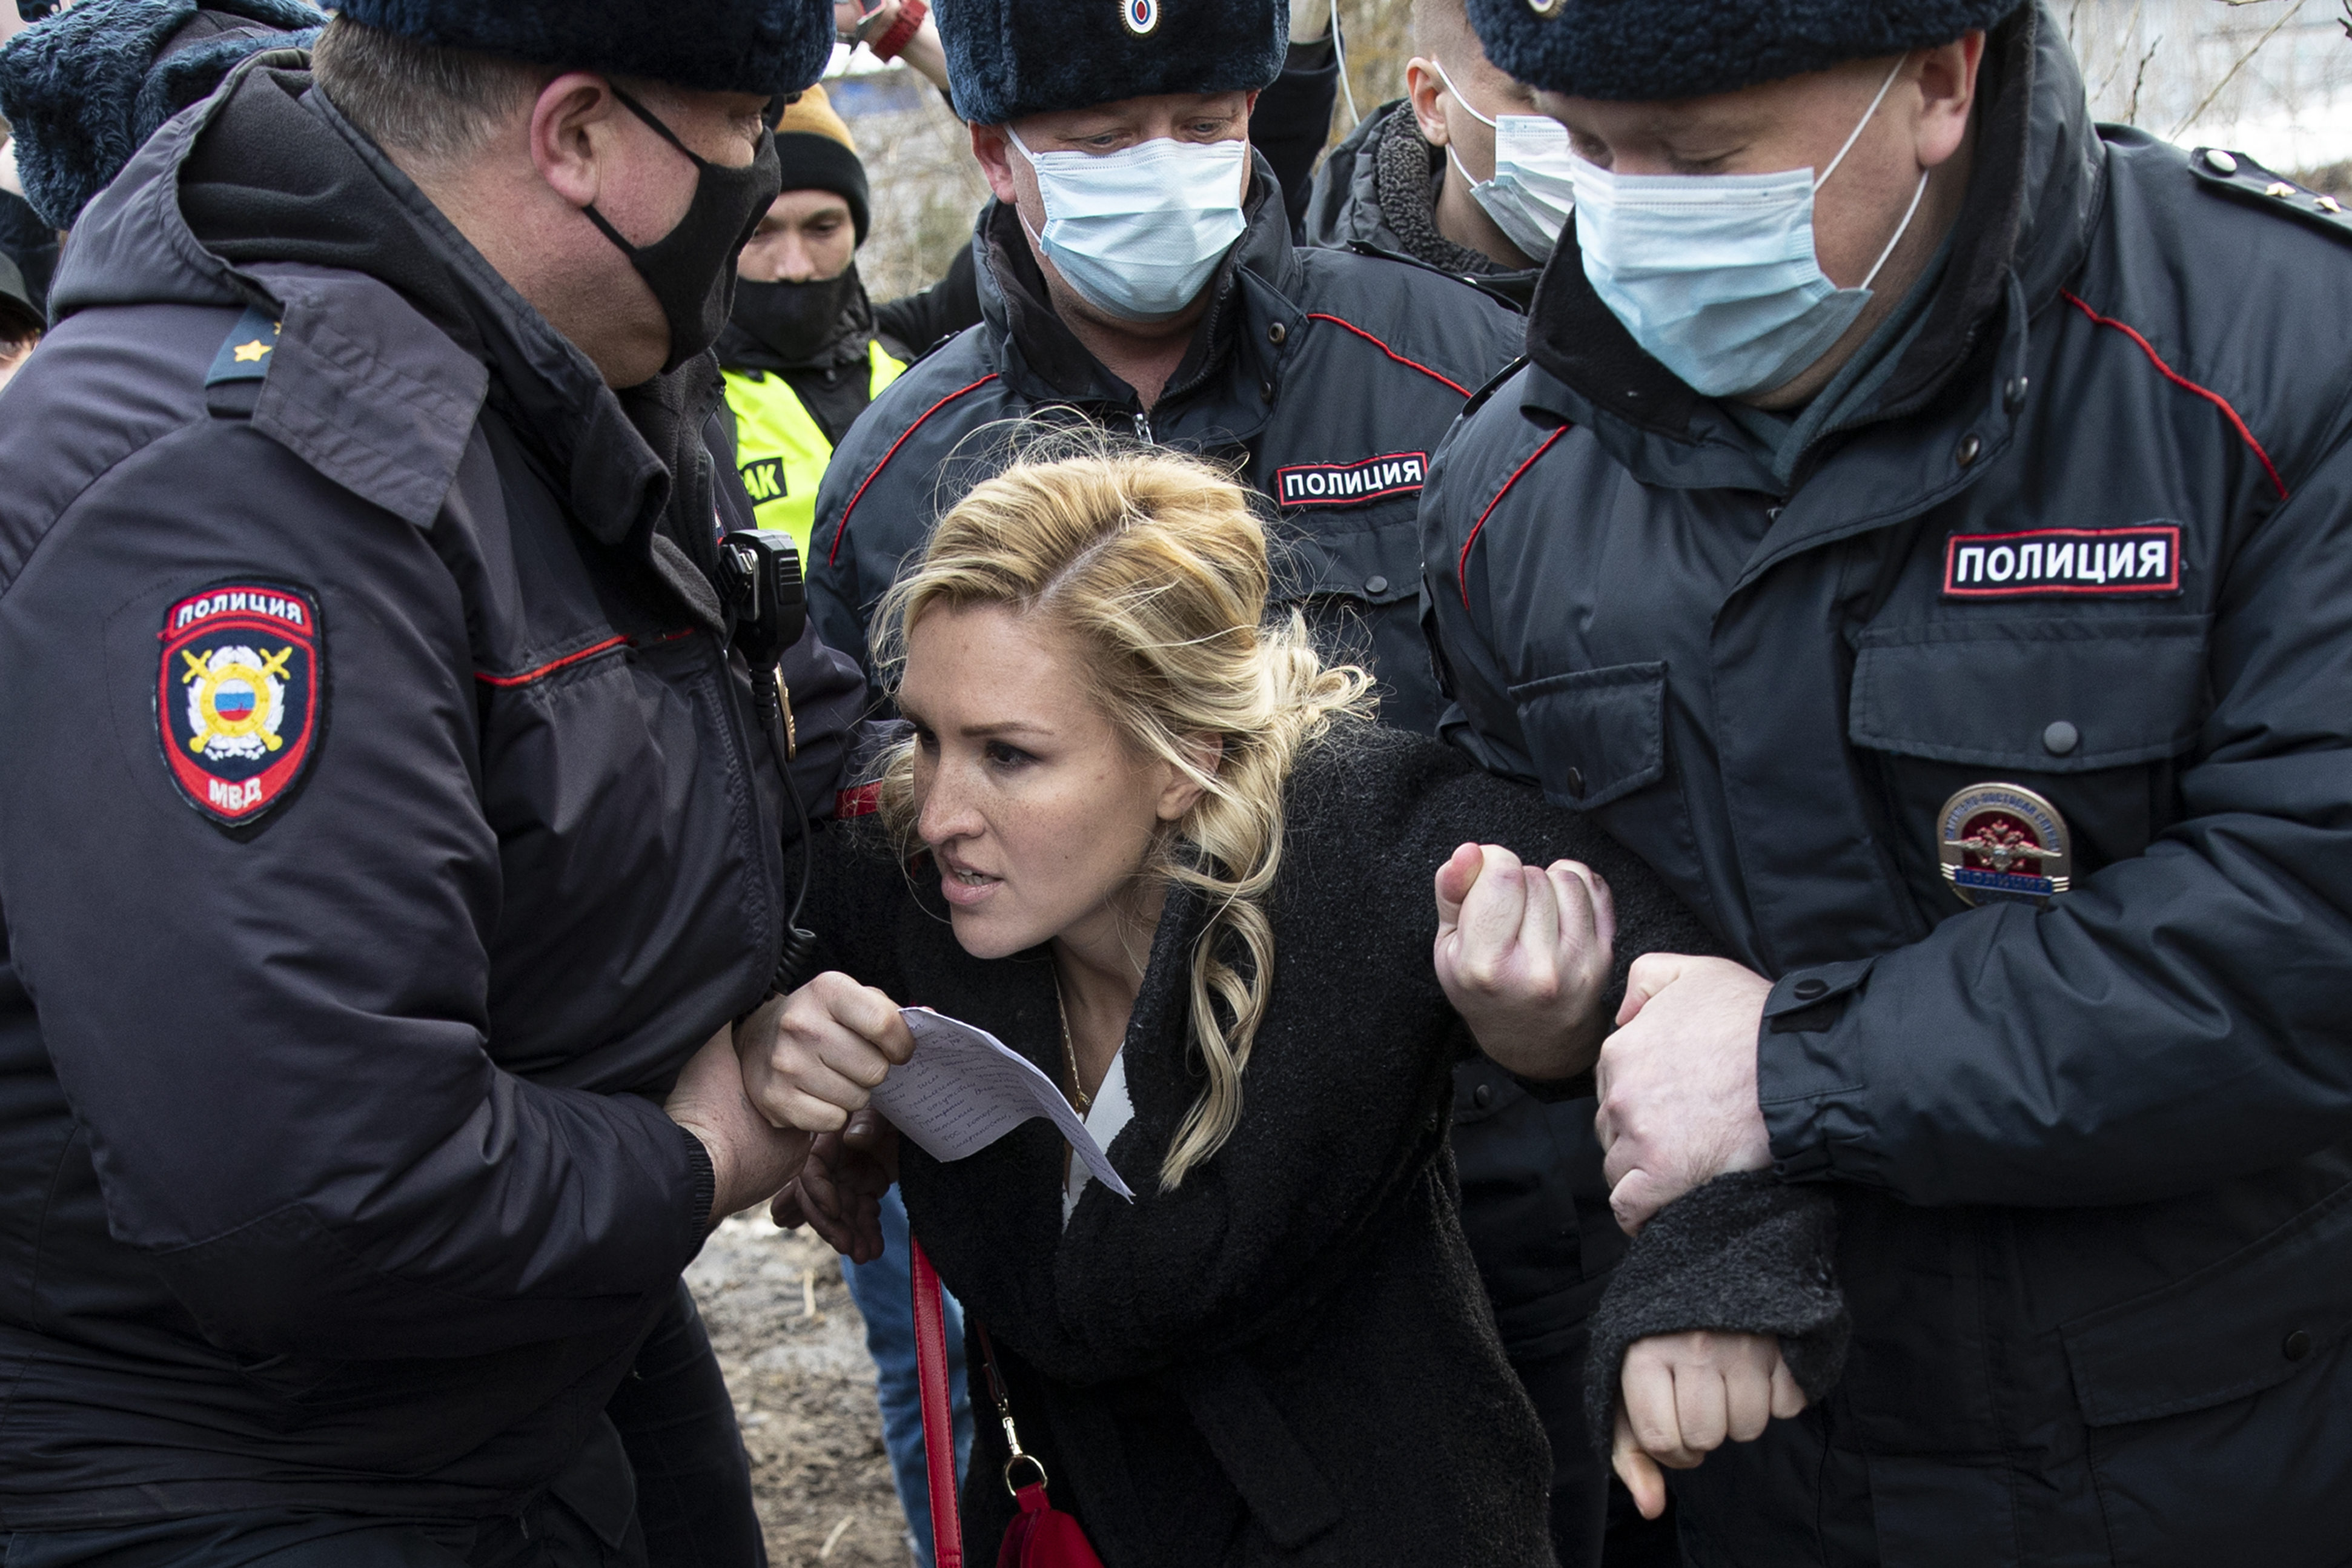 Police officers detain the Alliance of Doctors union's leader Anastasia Vasilyeva at the prison colony IK-2, which stands out among Russian penitentiary facilities for its particularly strict regime, in Pokrov in the Vladimir region, 85 kilometers (53 miles) east of Moscow, Russia, Tuesday, April 6, 2021.